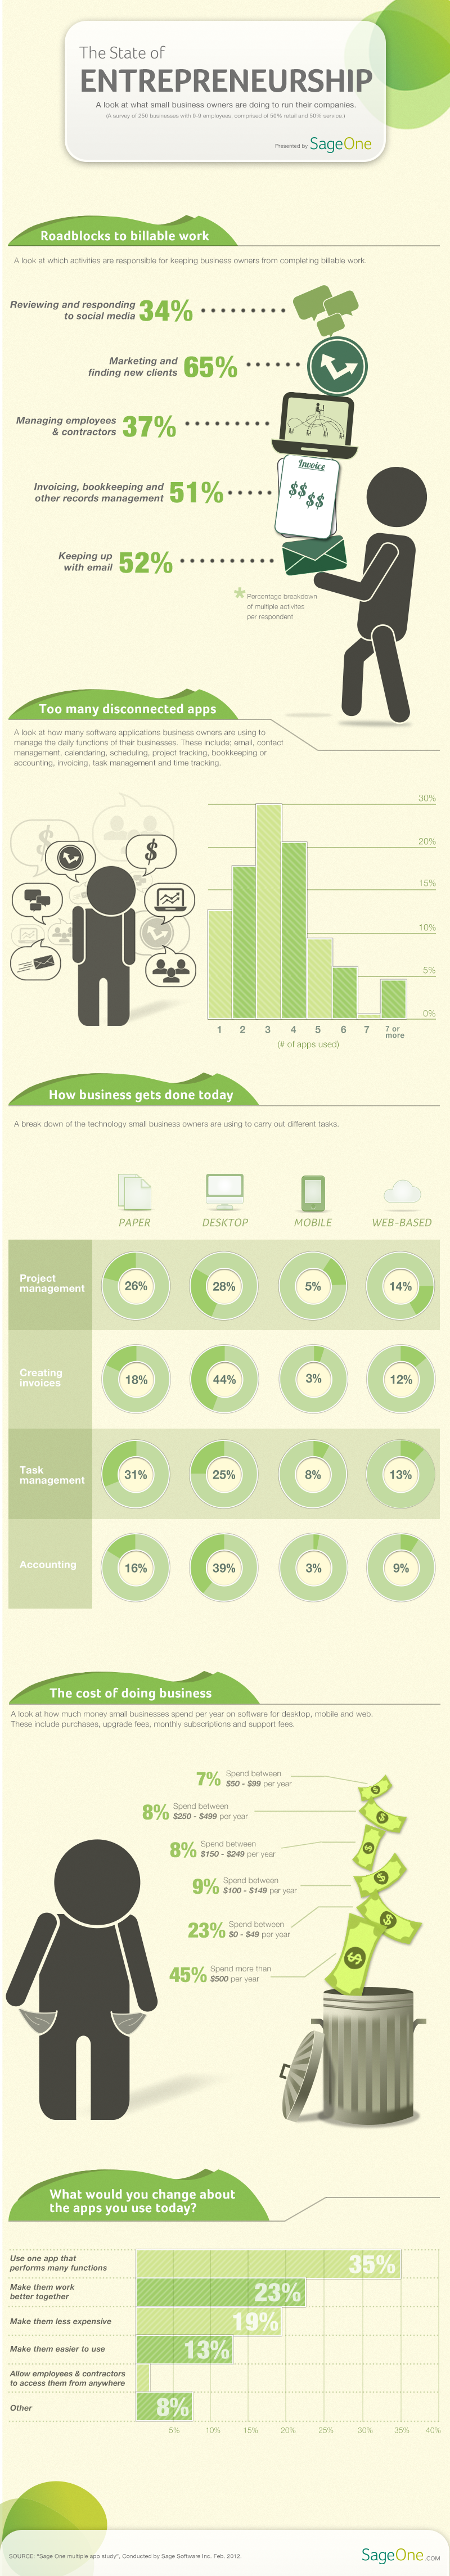 State of Entrepreneurship - A Study Conducted by Sage